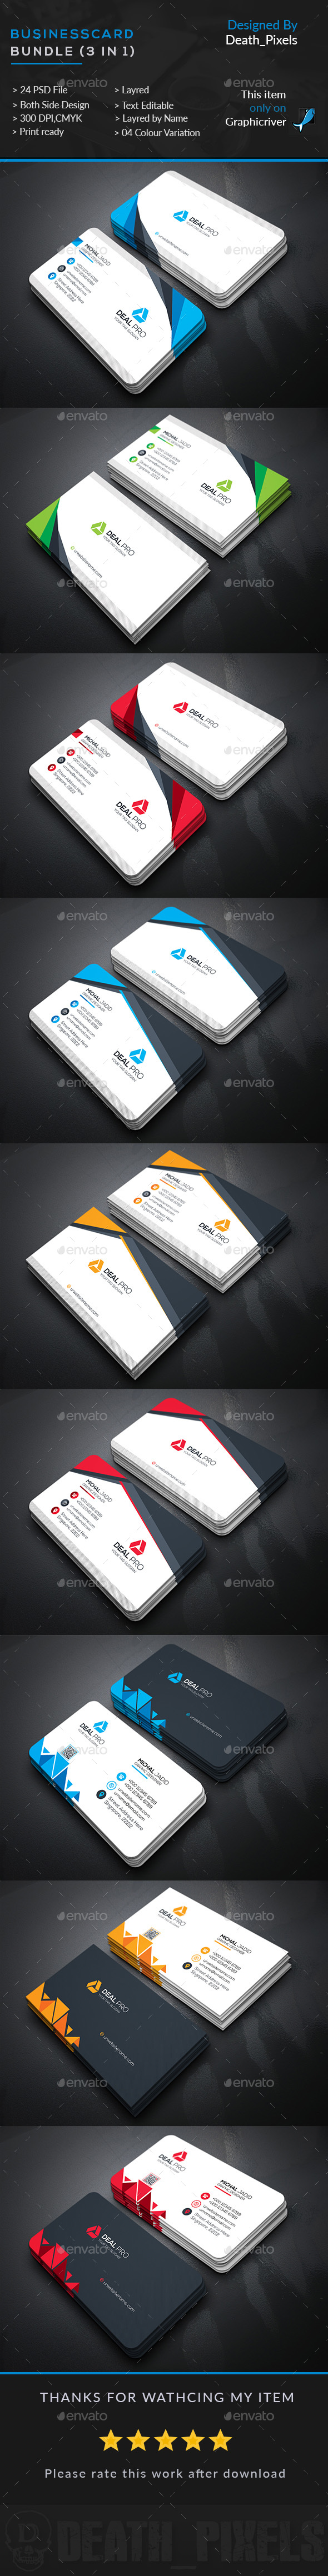 Business card templates psd bundle 3 in 1 business card business card templates psd bundle 3 in 1 reheart Choice Image